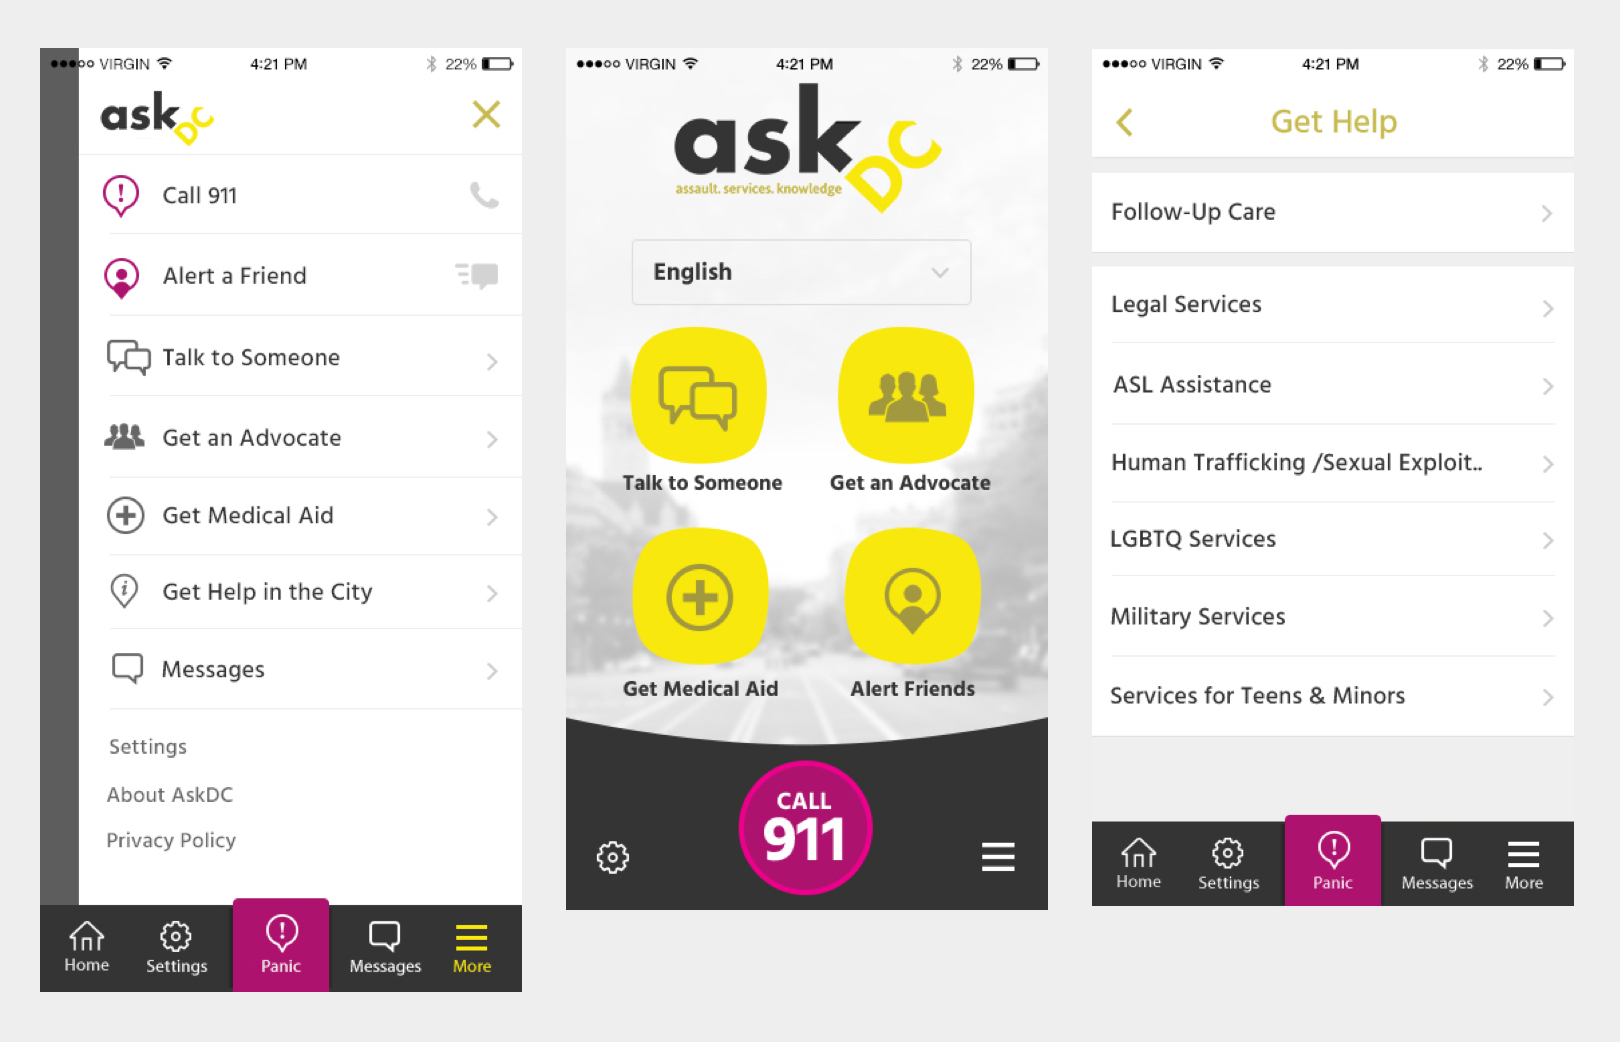 Screenshots of the ASKDC mobile app